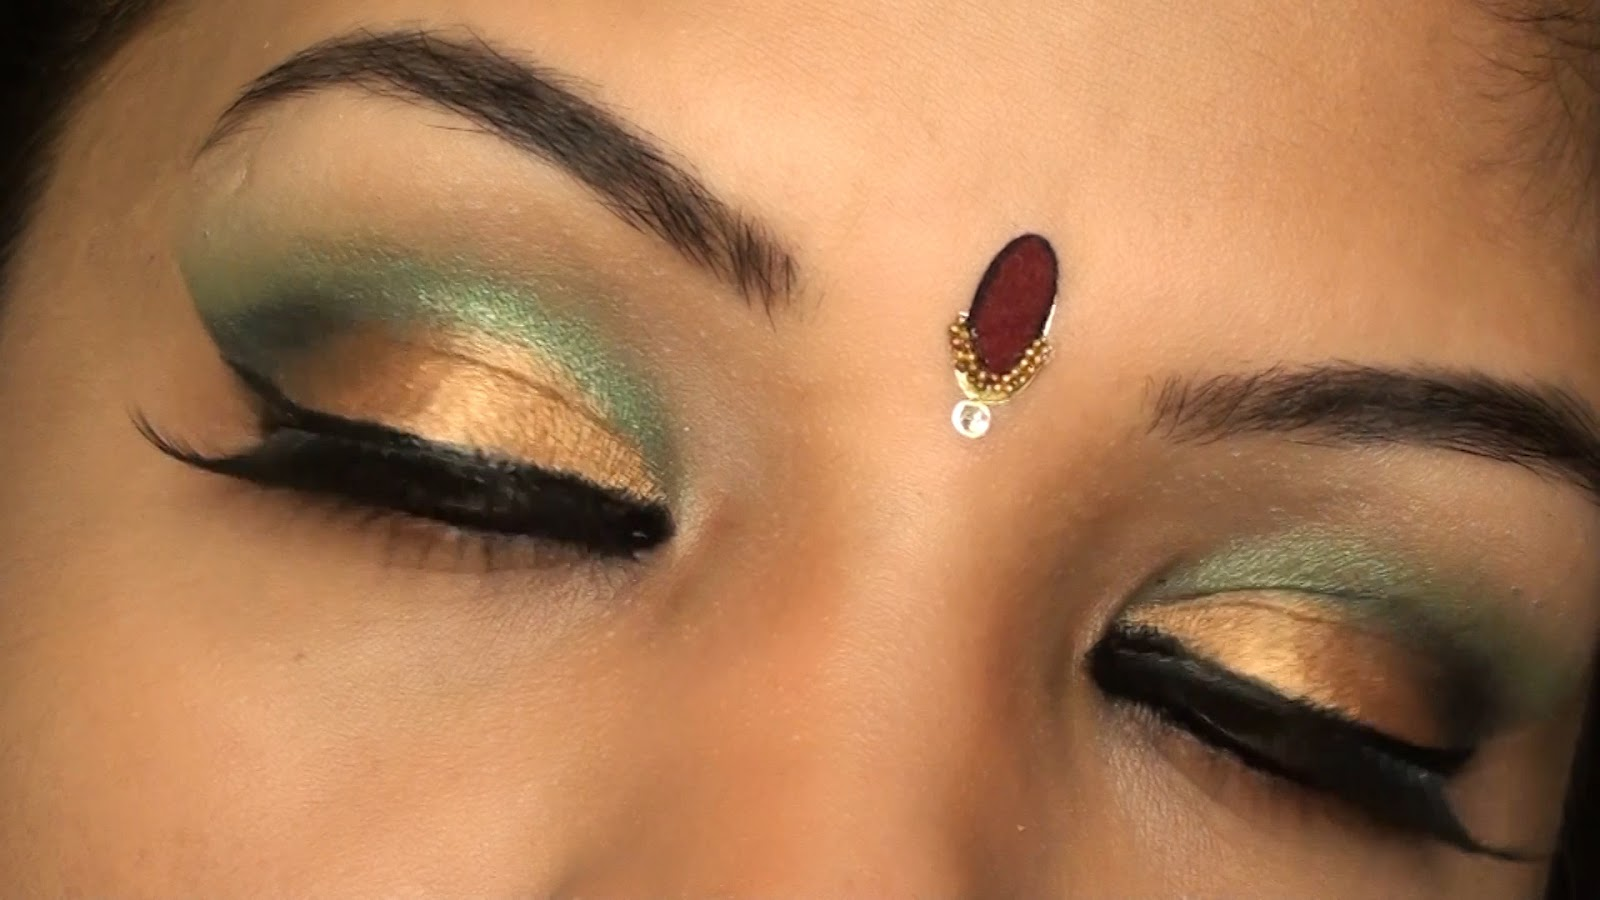 Bollywood Inspired Indian Bridal Wedding Make up Tutorial Gold and Green eye makeup for Brown skin tone .Still001